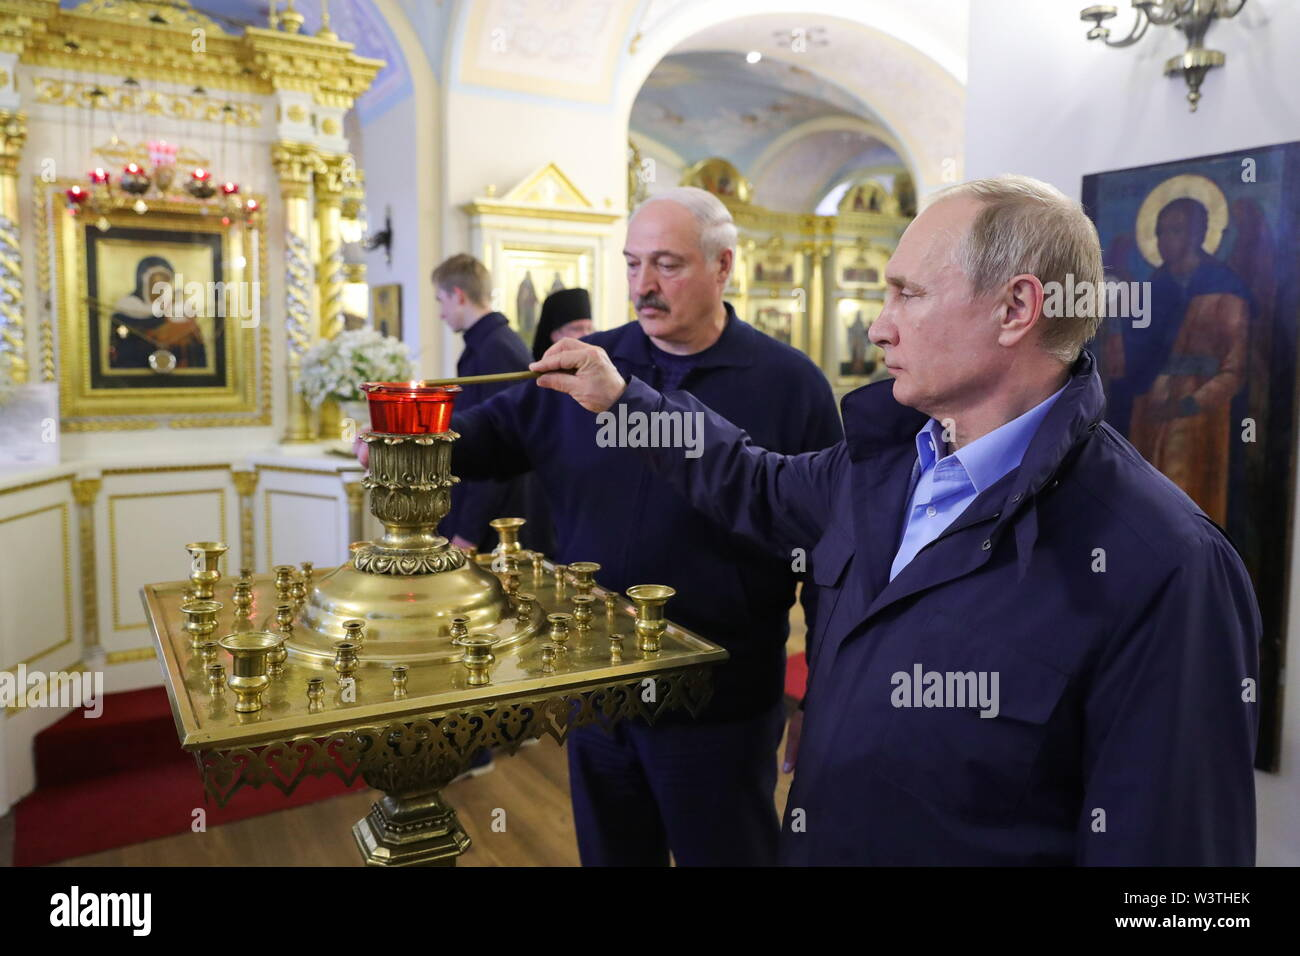 Russia. 17th July, 2019. LENINGRAD REGION, RUSSIA - JULY 17, 2019: Russia's President Vladimir Putin (R) and Belarus' President Alexander Lukashenko light candles on their visit to the Konevsky Monastery on Lake Ladoga. Mikhail Klimentyev/Russian Presidential Press and Information Office/TASS Credit: ITAR-TASS News Agency/Alamy Live News - Stock Image